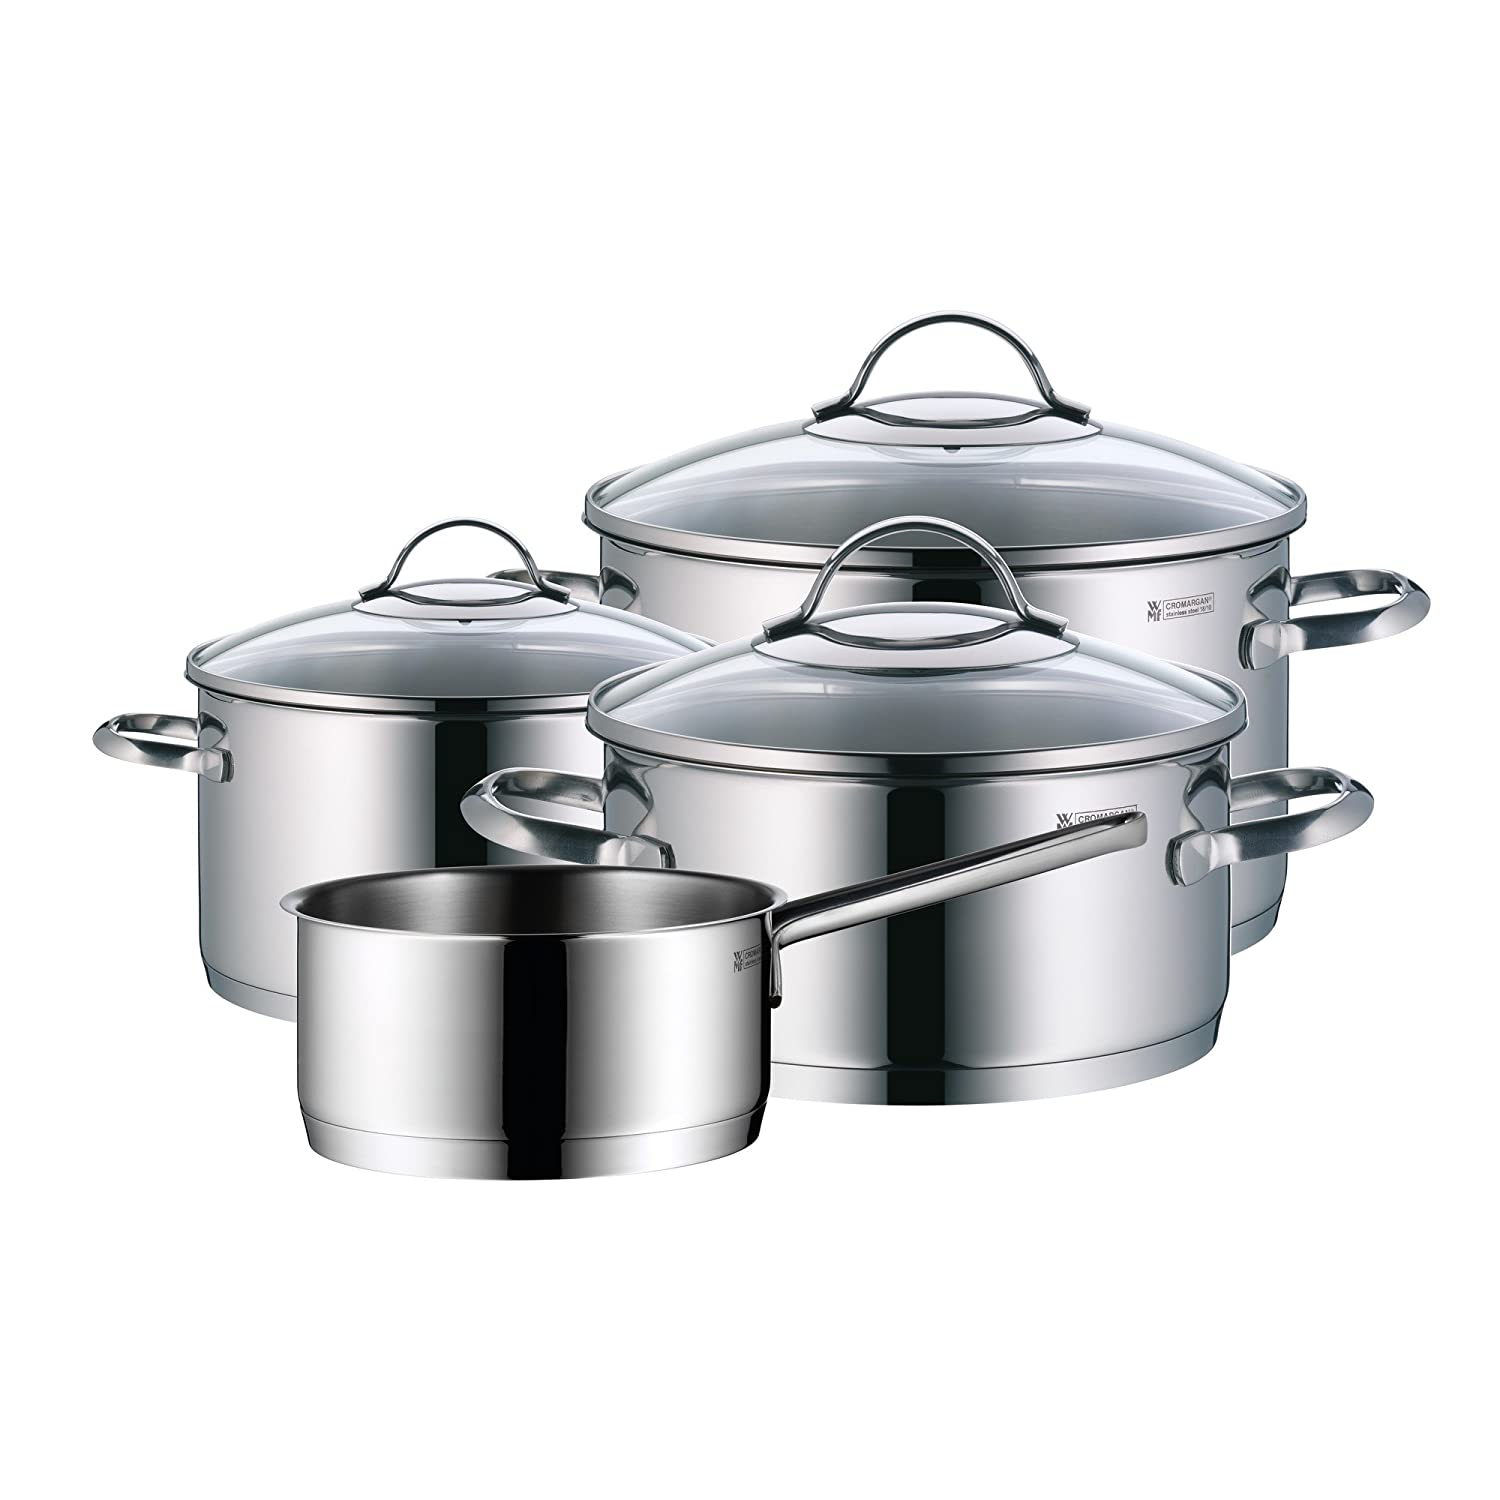 WMF Pot Set 4-Piece Provence Plus Pouring Rim Glass Lid Cromargan Stainless Steel Polished Suitable for Induction Hobs Dishwasher-Safe WMF Group GmbH 723046380